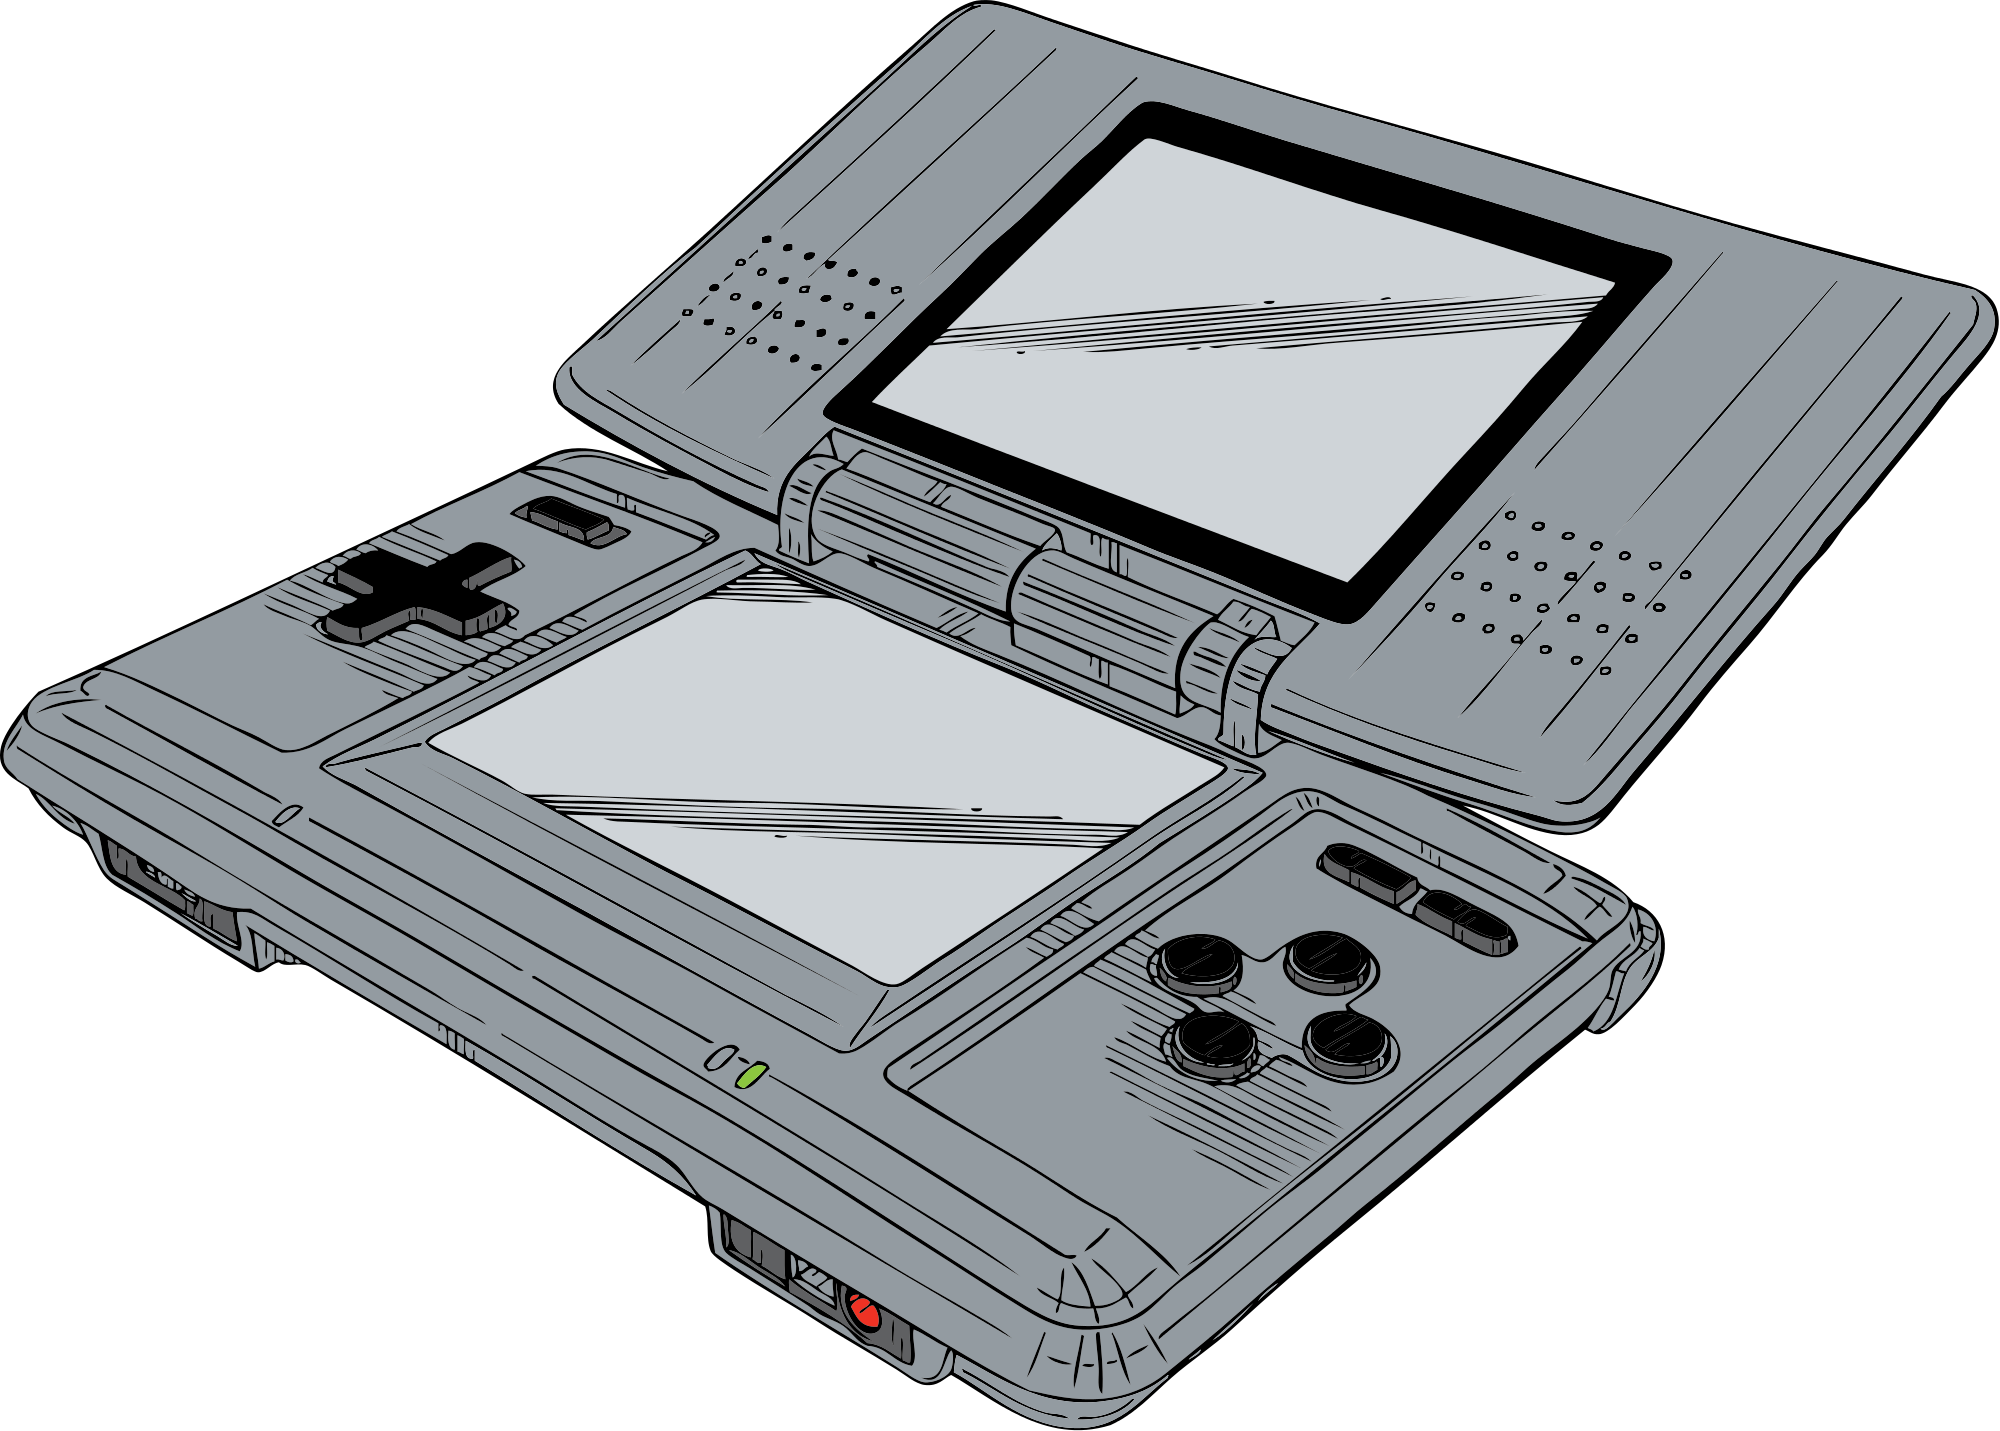 Ds drawing nintendo. File svg wikimedia commons